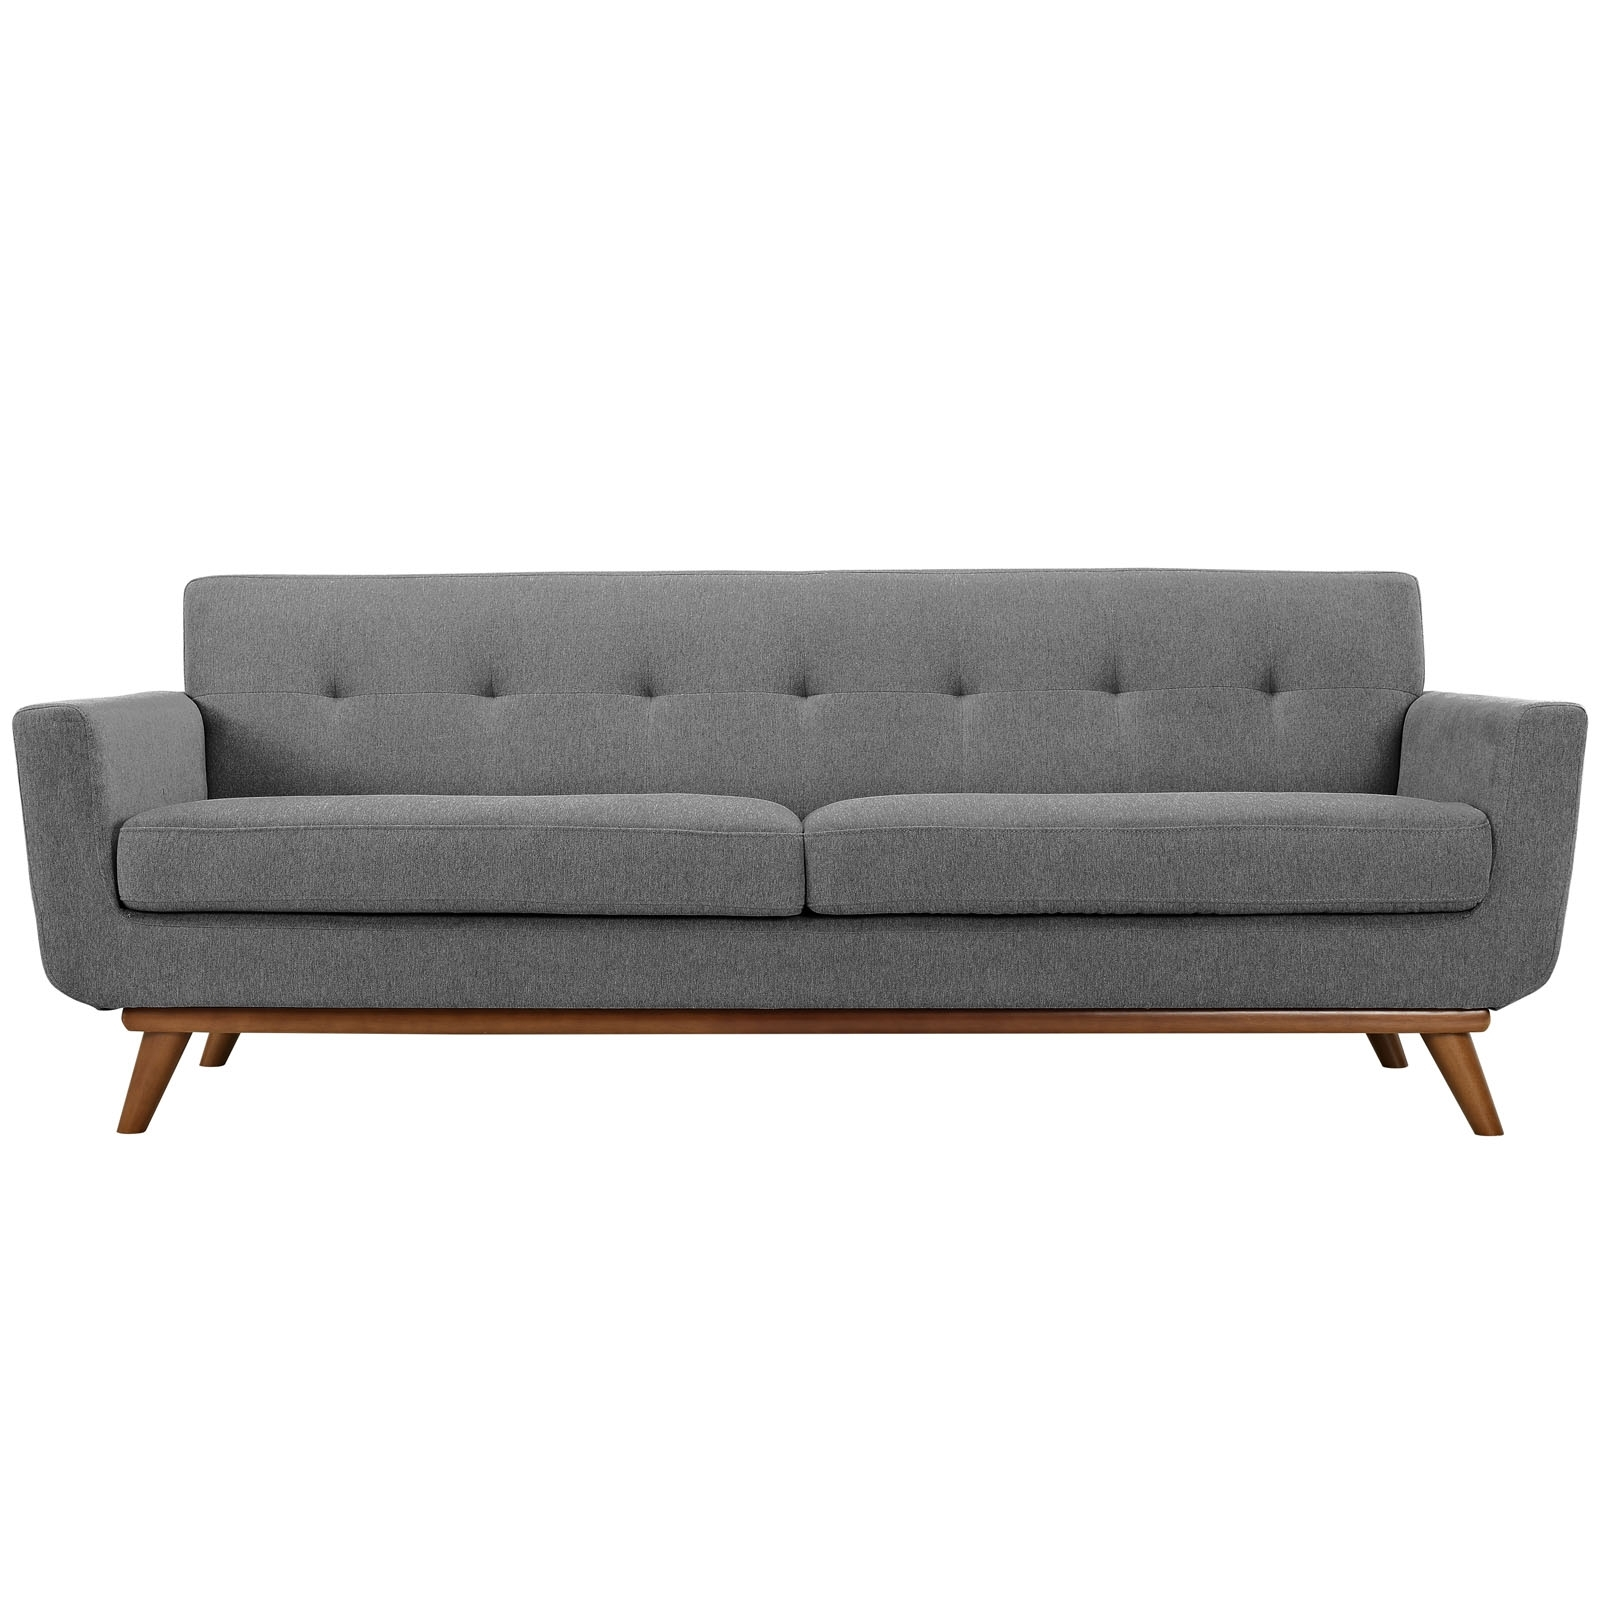 Widely Used Lancaster Pa Sectional Sofas Regarding Sofas & Couches – Walmart (View 18 of 20)